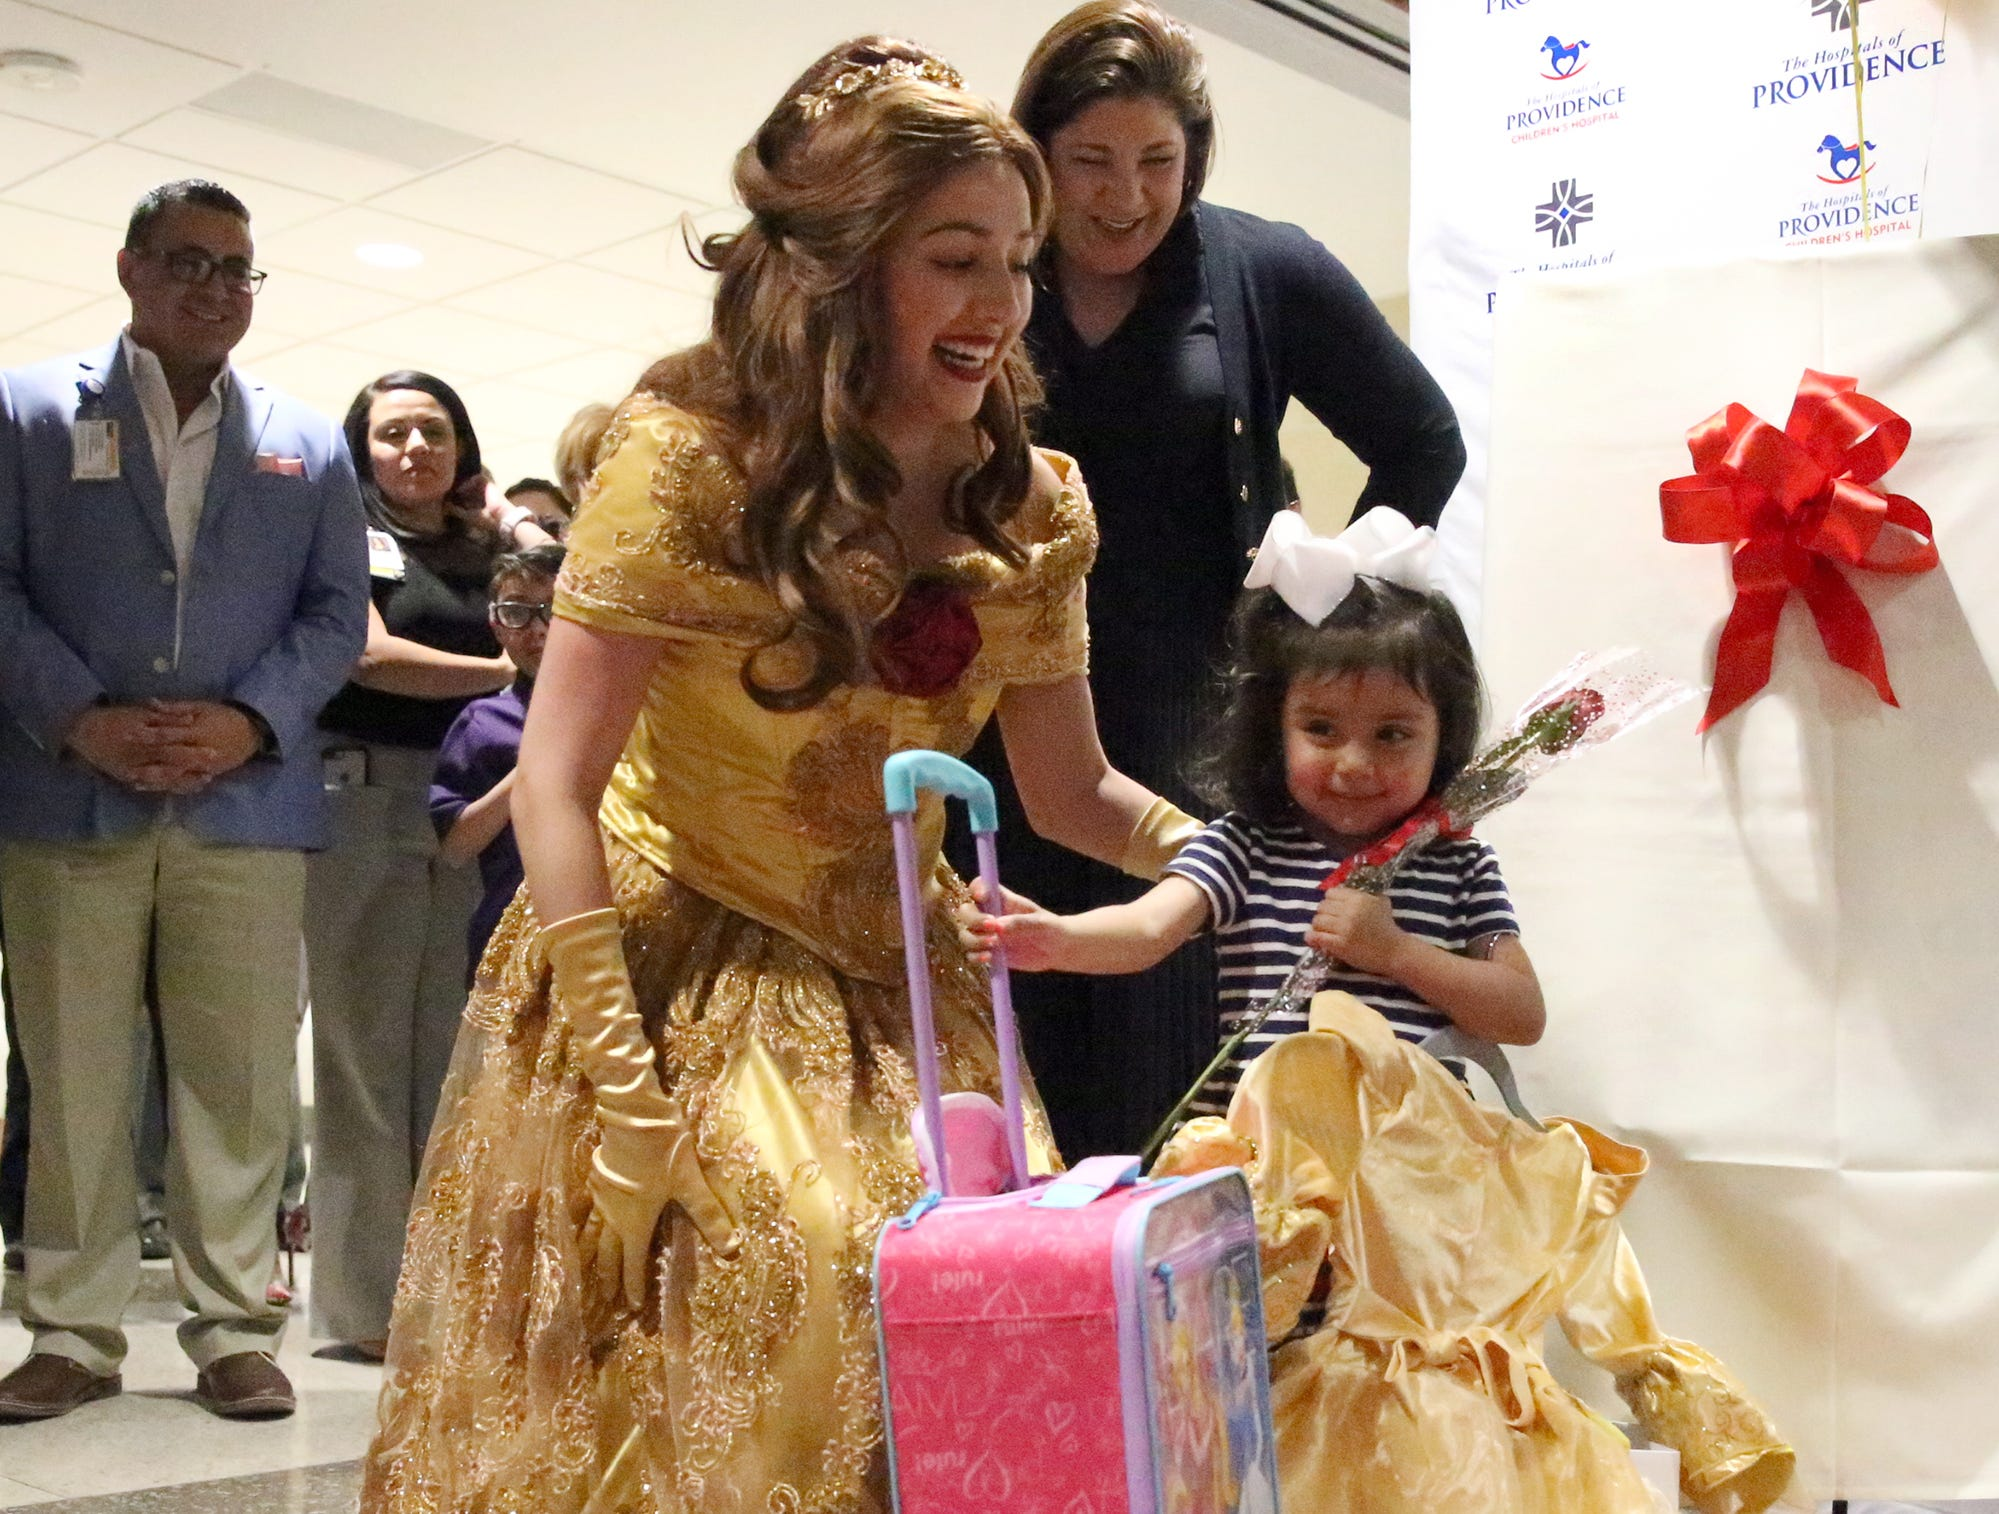 "Fernanda Rivera, 3, is presented with luggage and a dress by the Make-A-Wish Foundation at the Children's Hospital at Providence Wednesday. Melissa Diaz, left, of Dreams Come True Princess Parties dressed as Belle of ""Beauty and the Beast"" with Sally Deitch, top, Group CEO for the Hospitals of Providence. The youngster and her family will visit Walt Disney World."